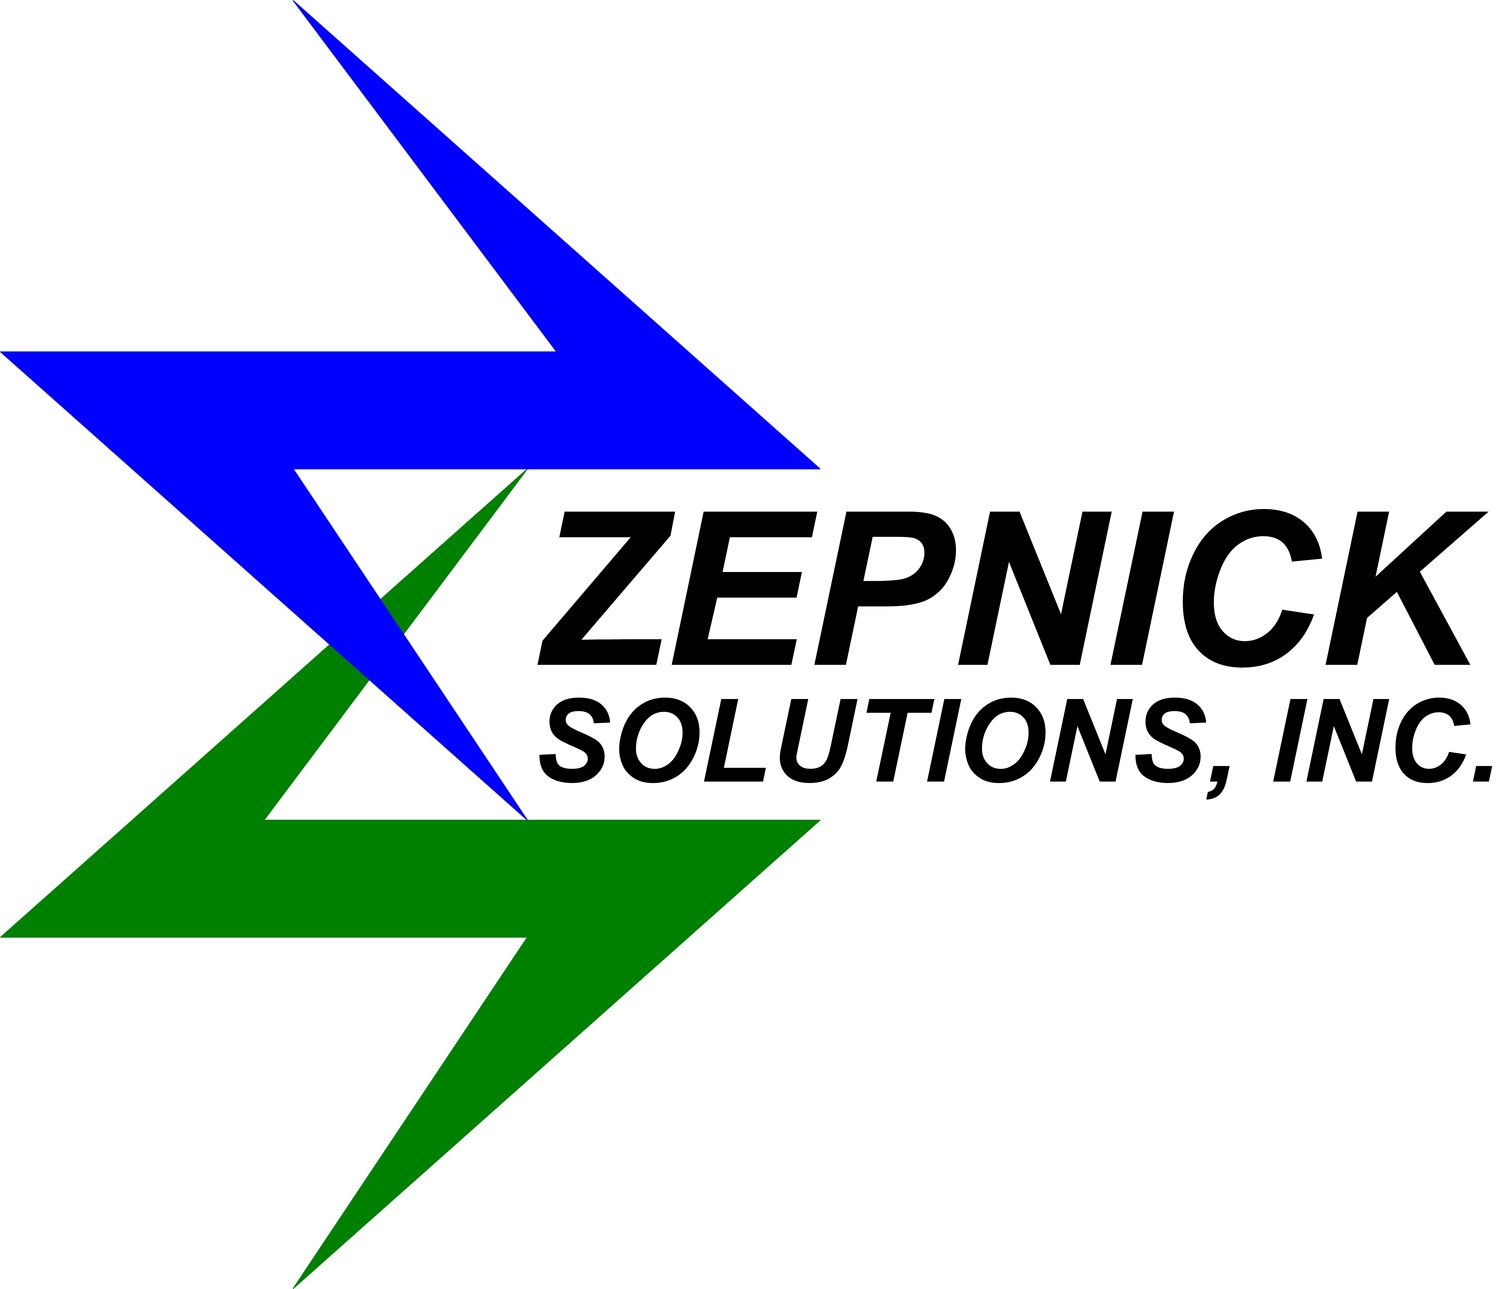 Zepnick Solutions, Inc.